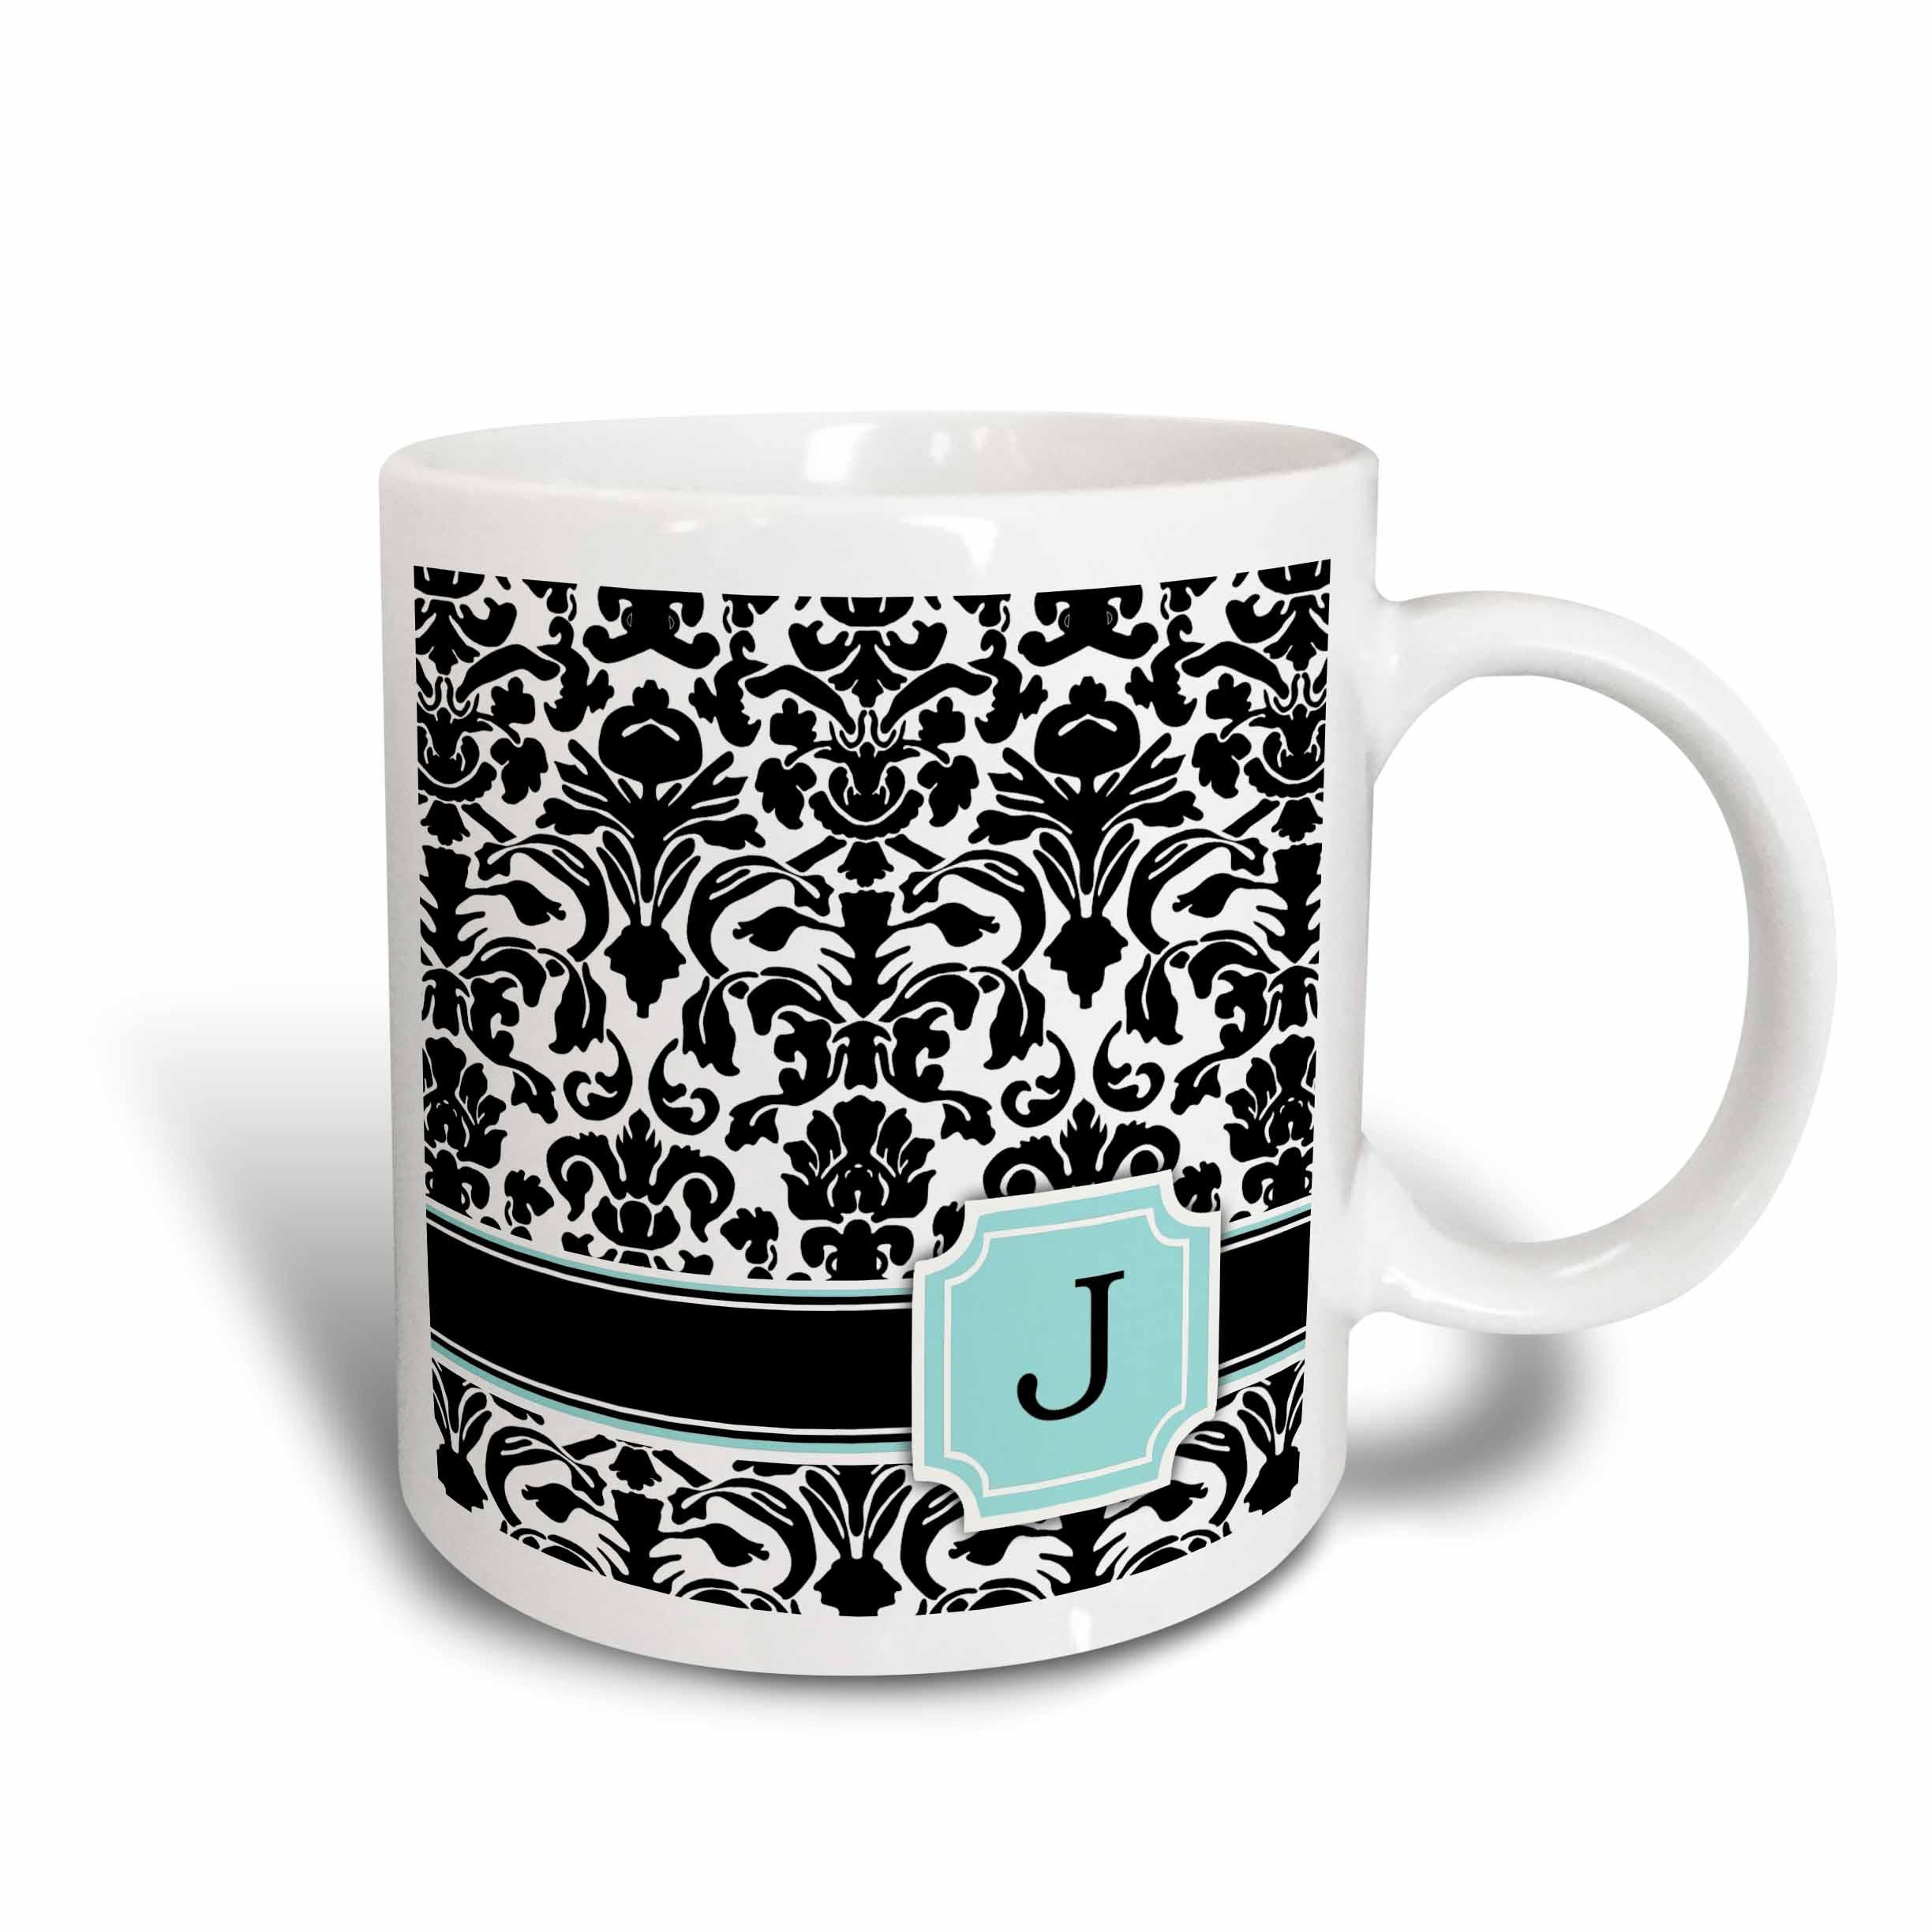 3dRose Letter J personal monogrammed mint blue black and white damask pattern - classy personalized initial, Ceramic Mug, 15-ounce